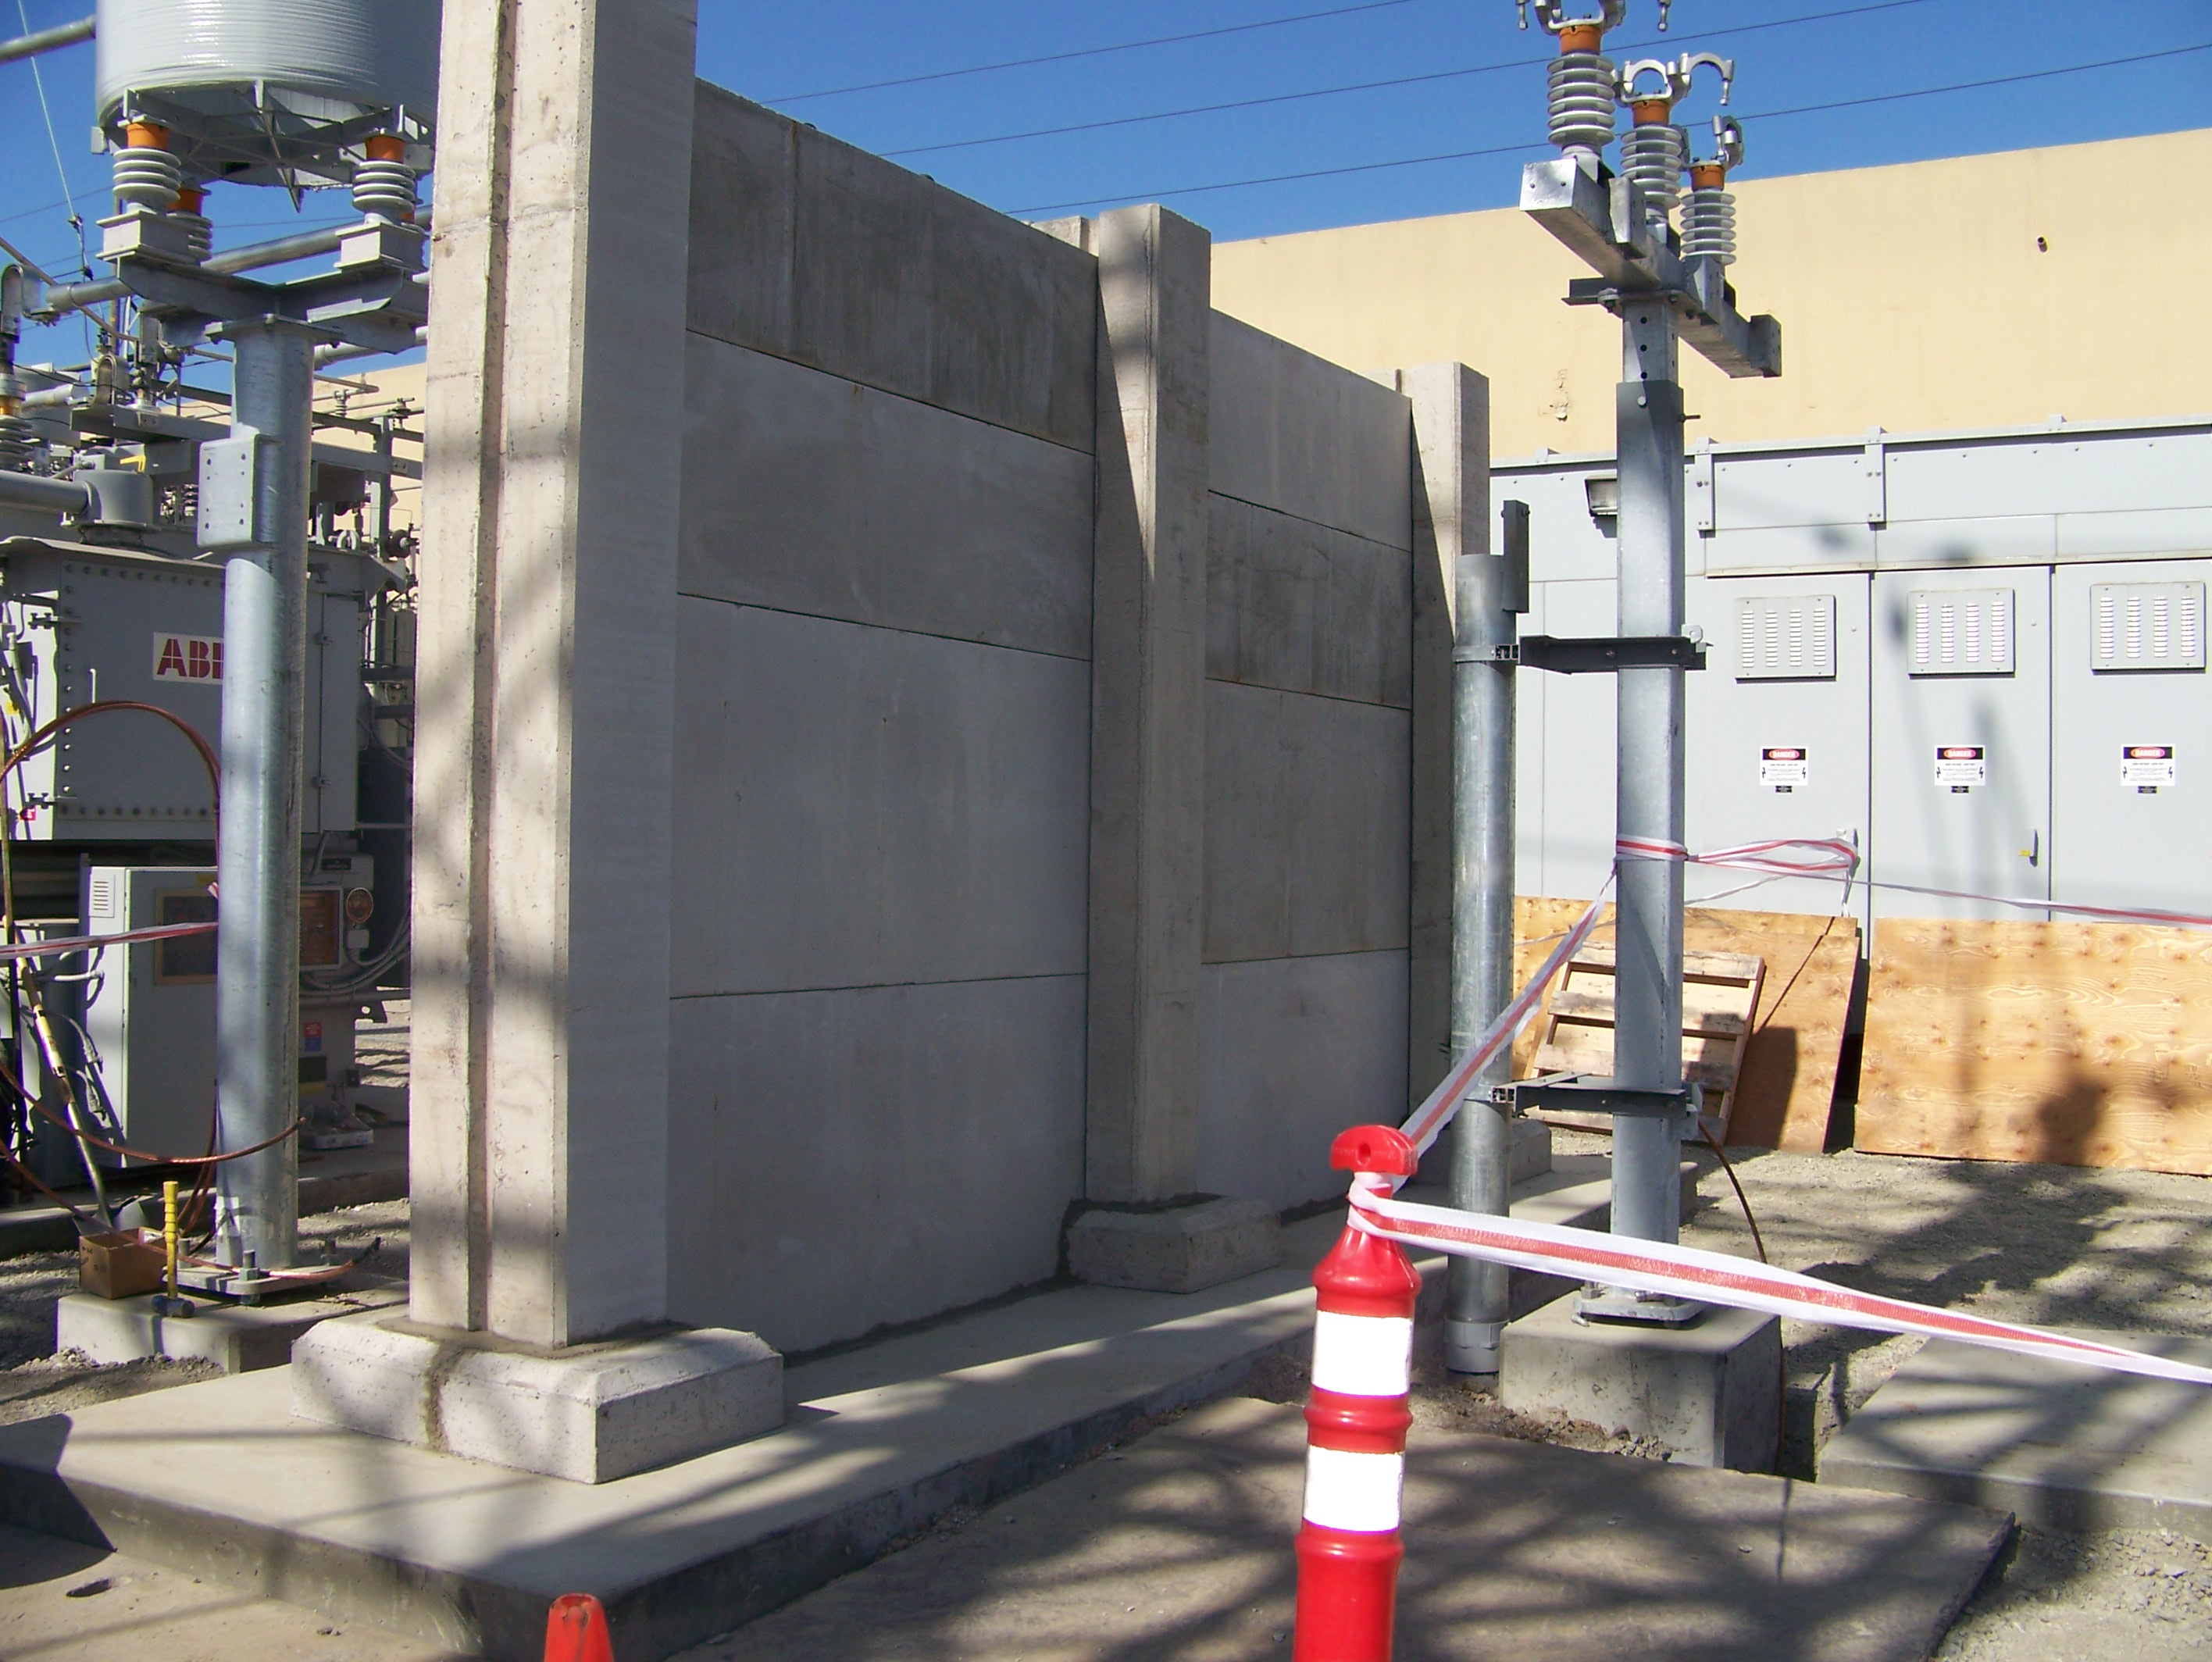 Firewall in a substation